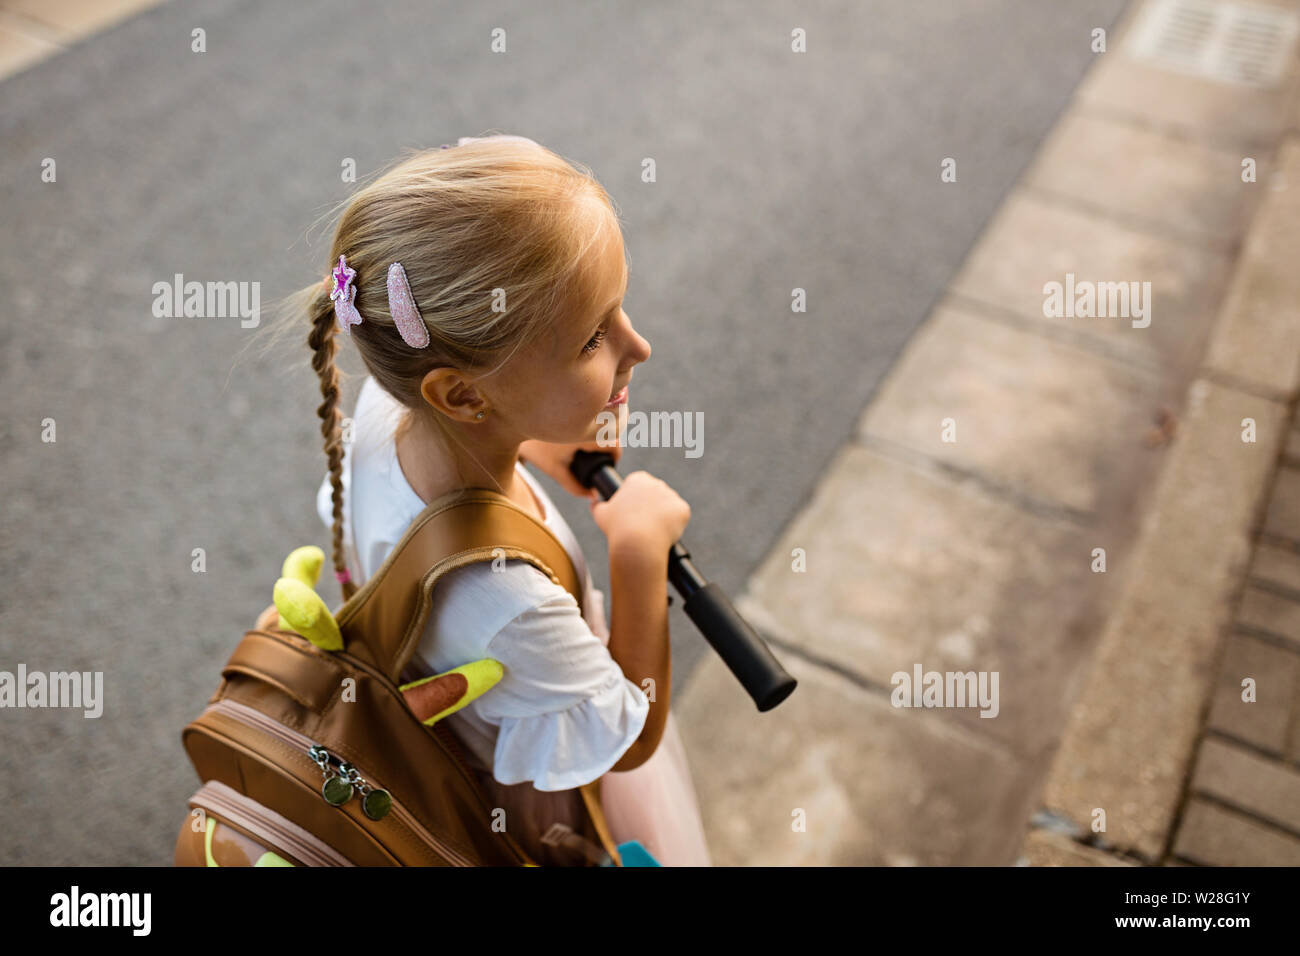 Kid girl pupil from behind walking back to home after learning study school alone with schoolbag, preschool and kindergarten education concept. First Stock Photo